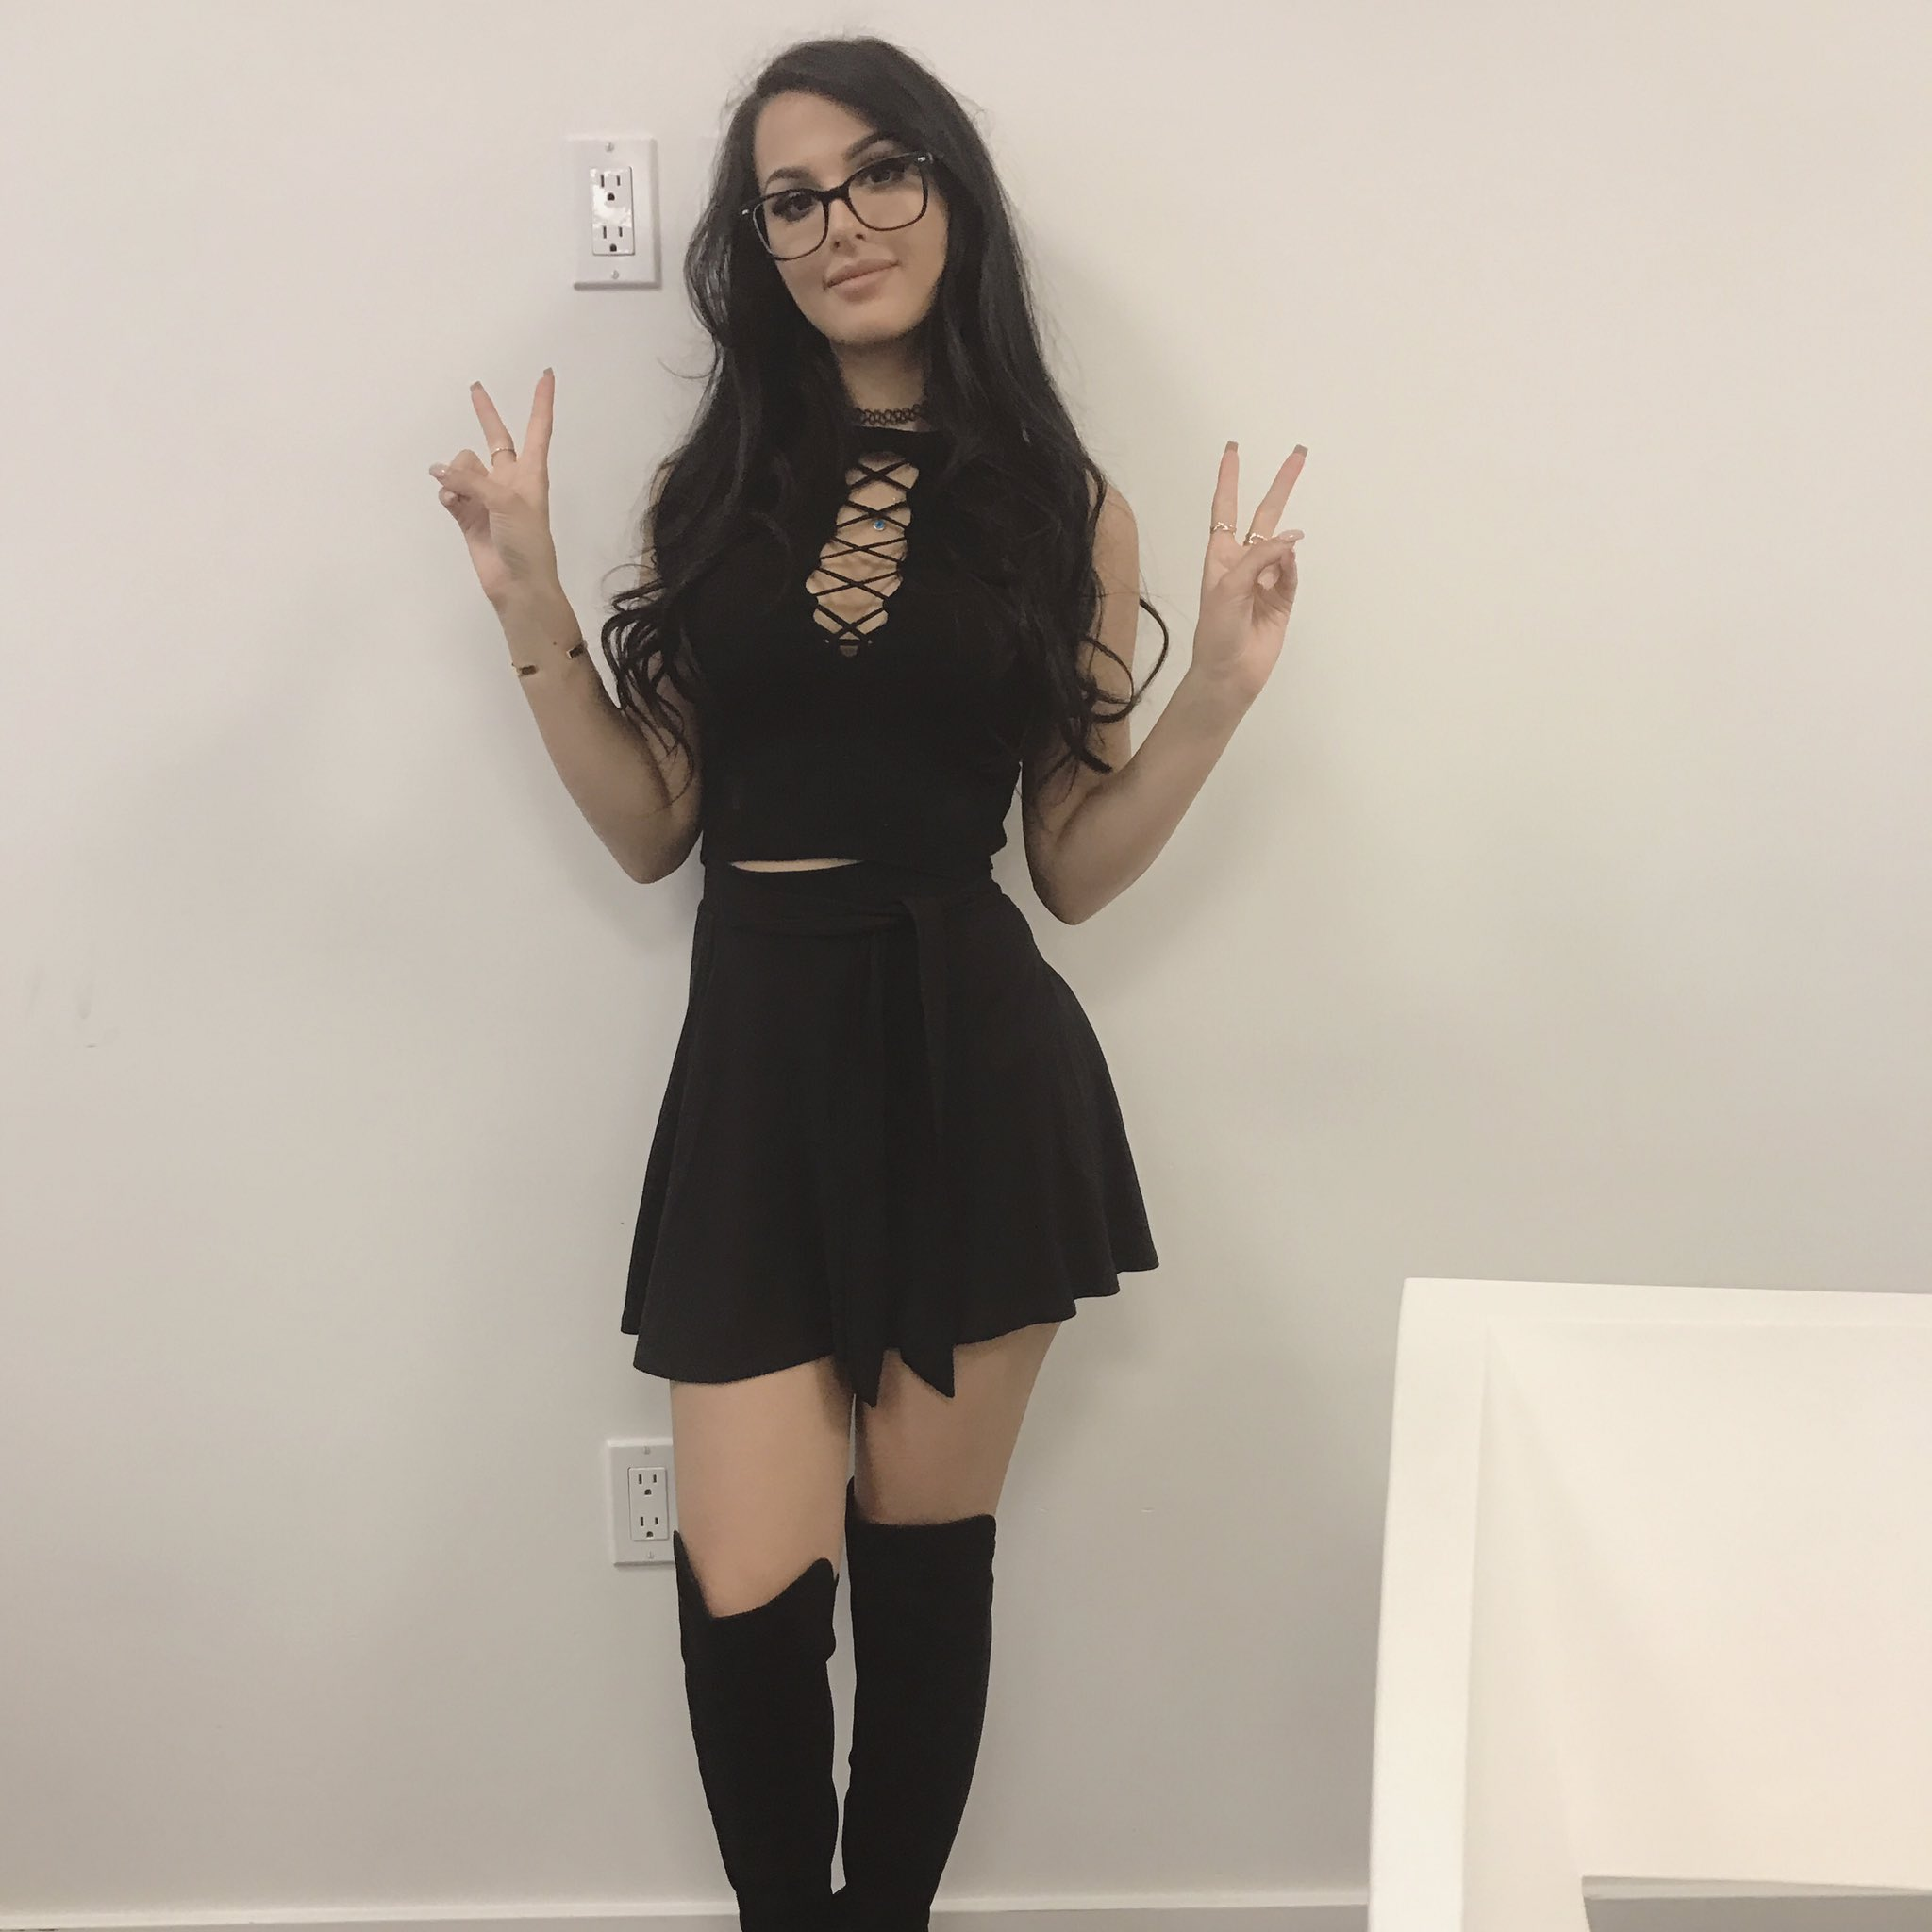 cosplay model sssniperwolf looking sexy in skirt and giving the peace sign